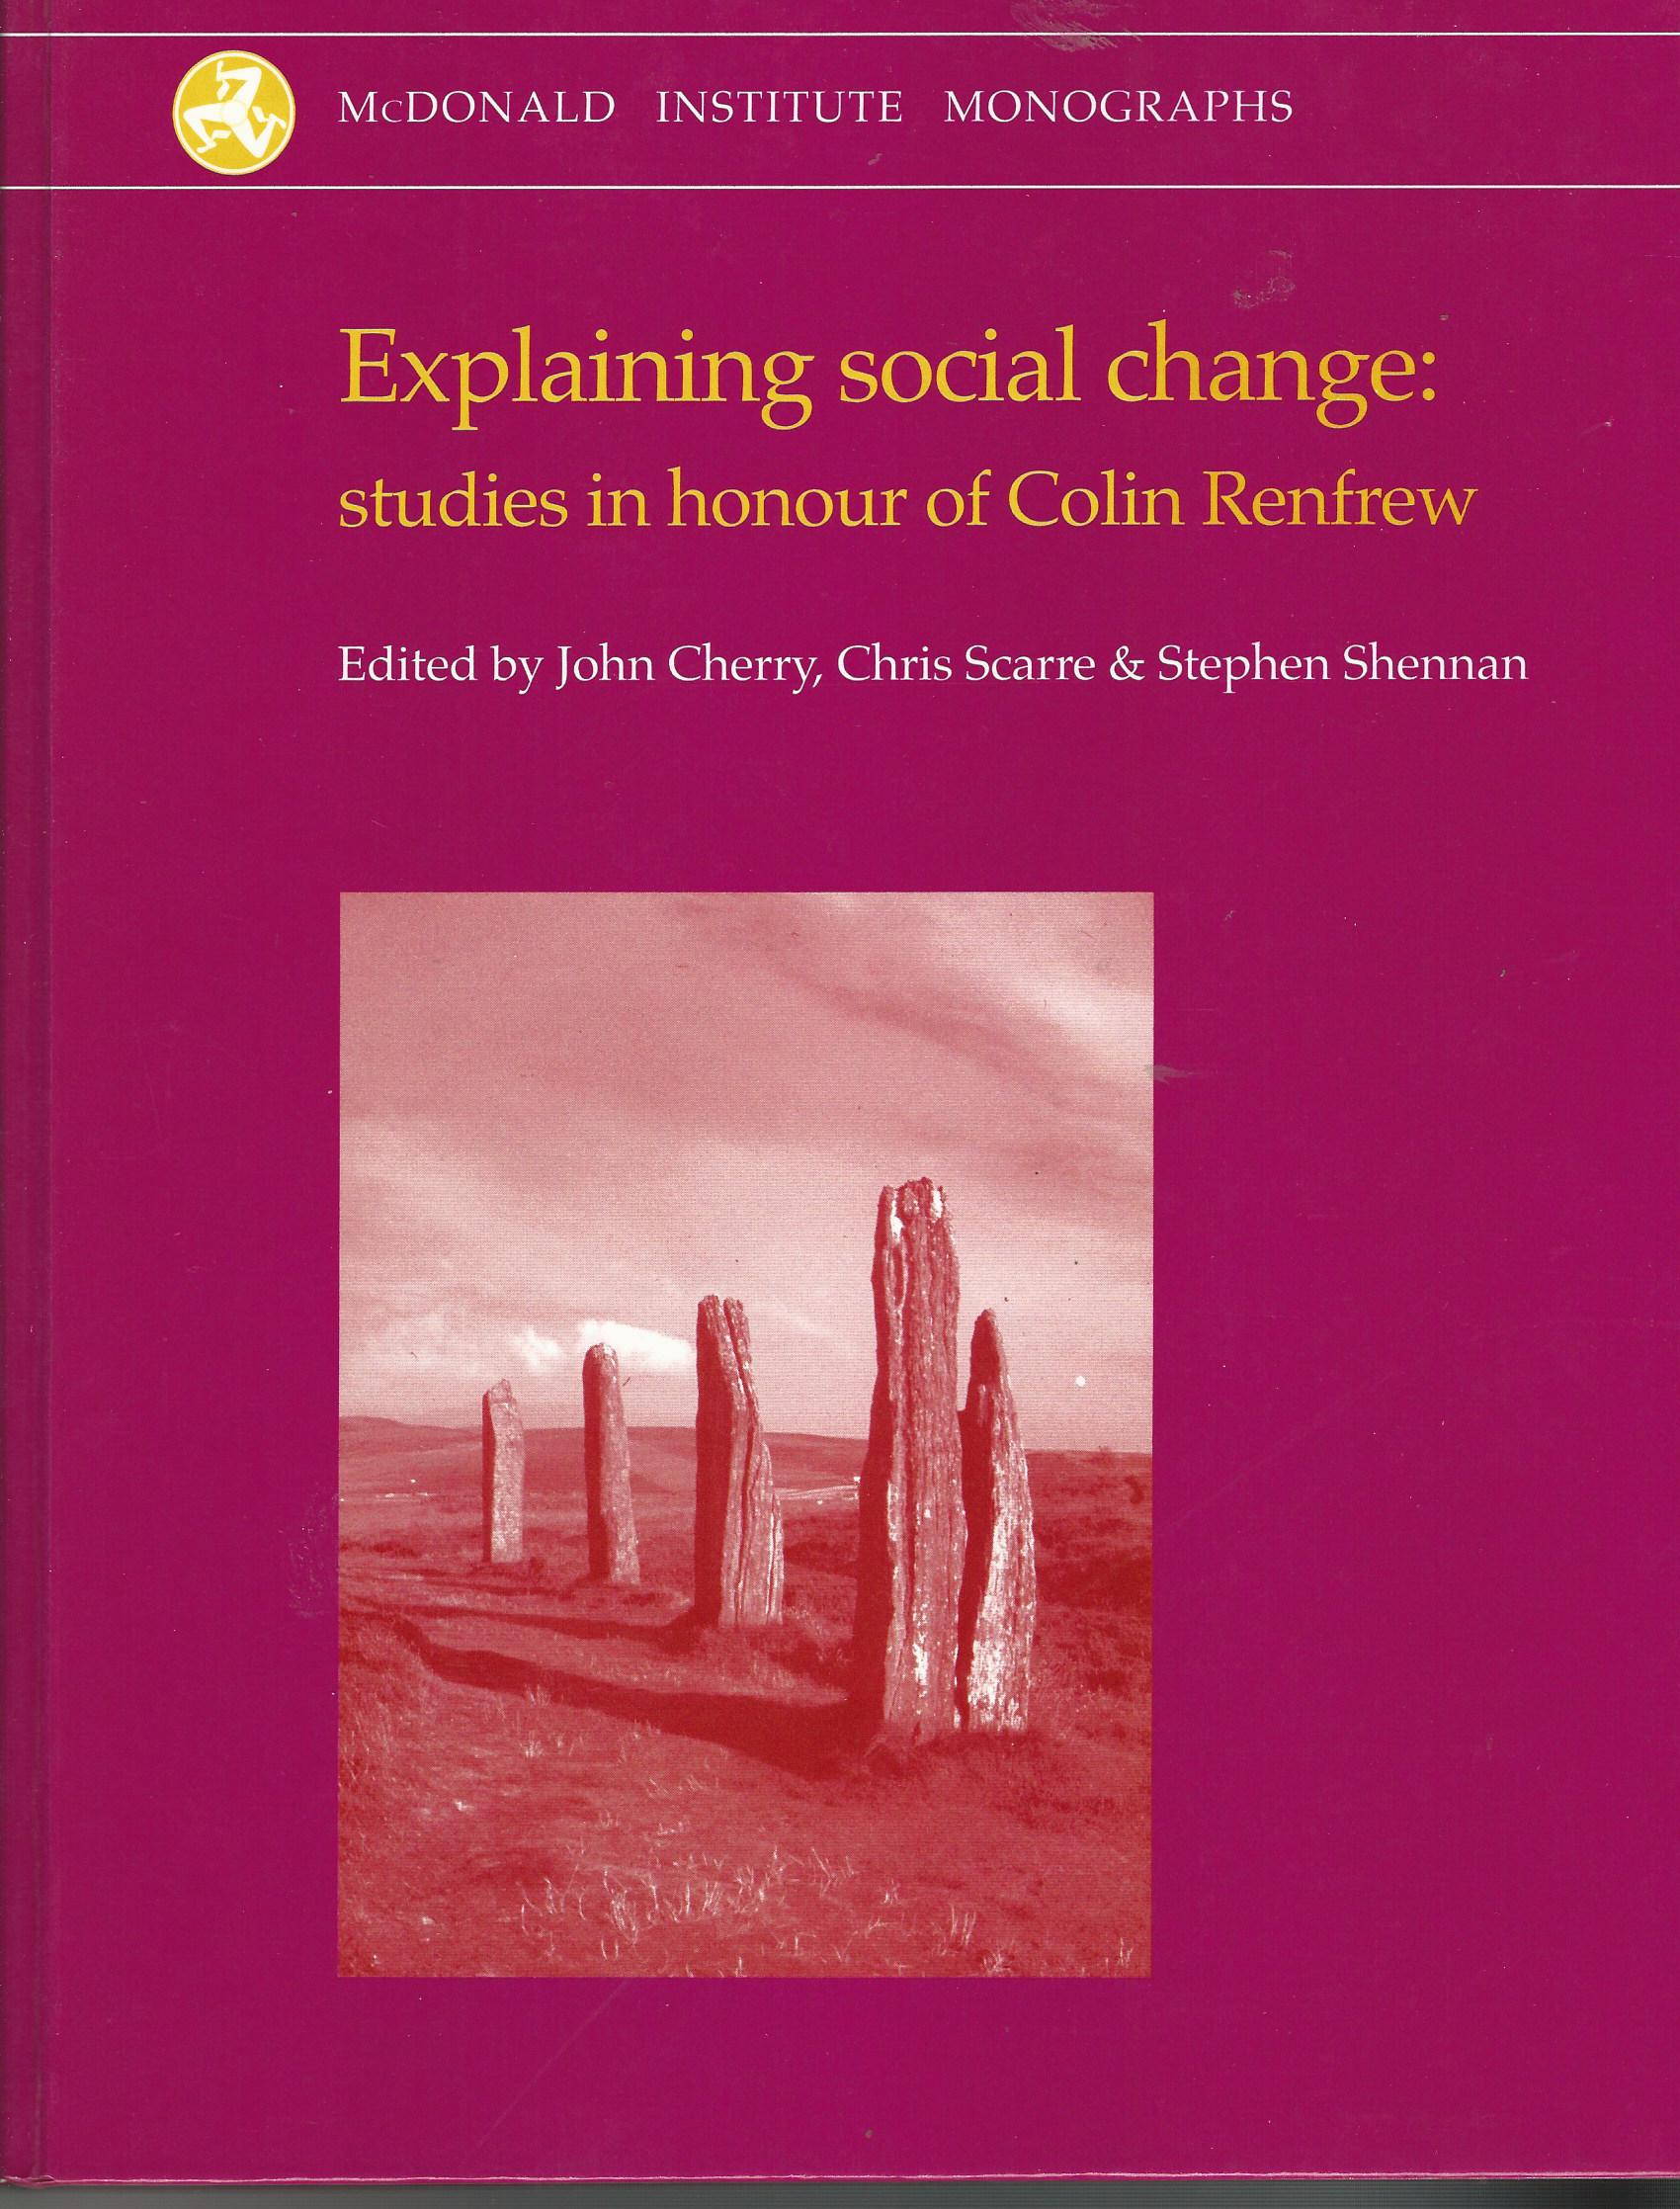 Image for Explaining Social Change: Studies in honour of Colin Renfrew (McDonald Institute Monographs)